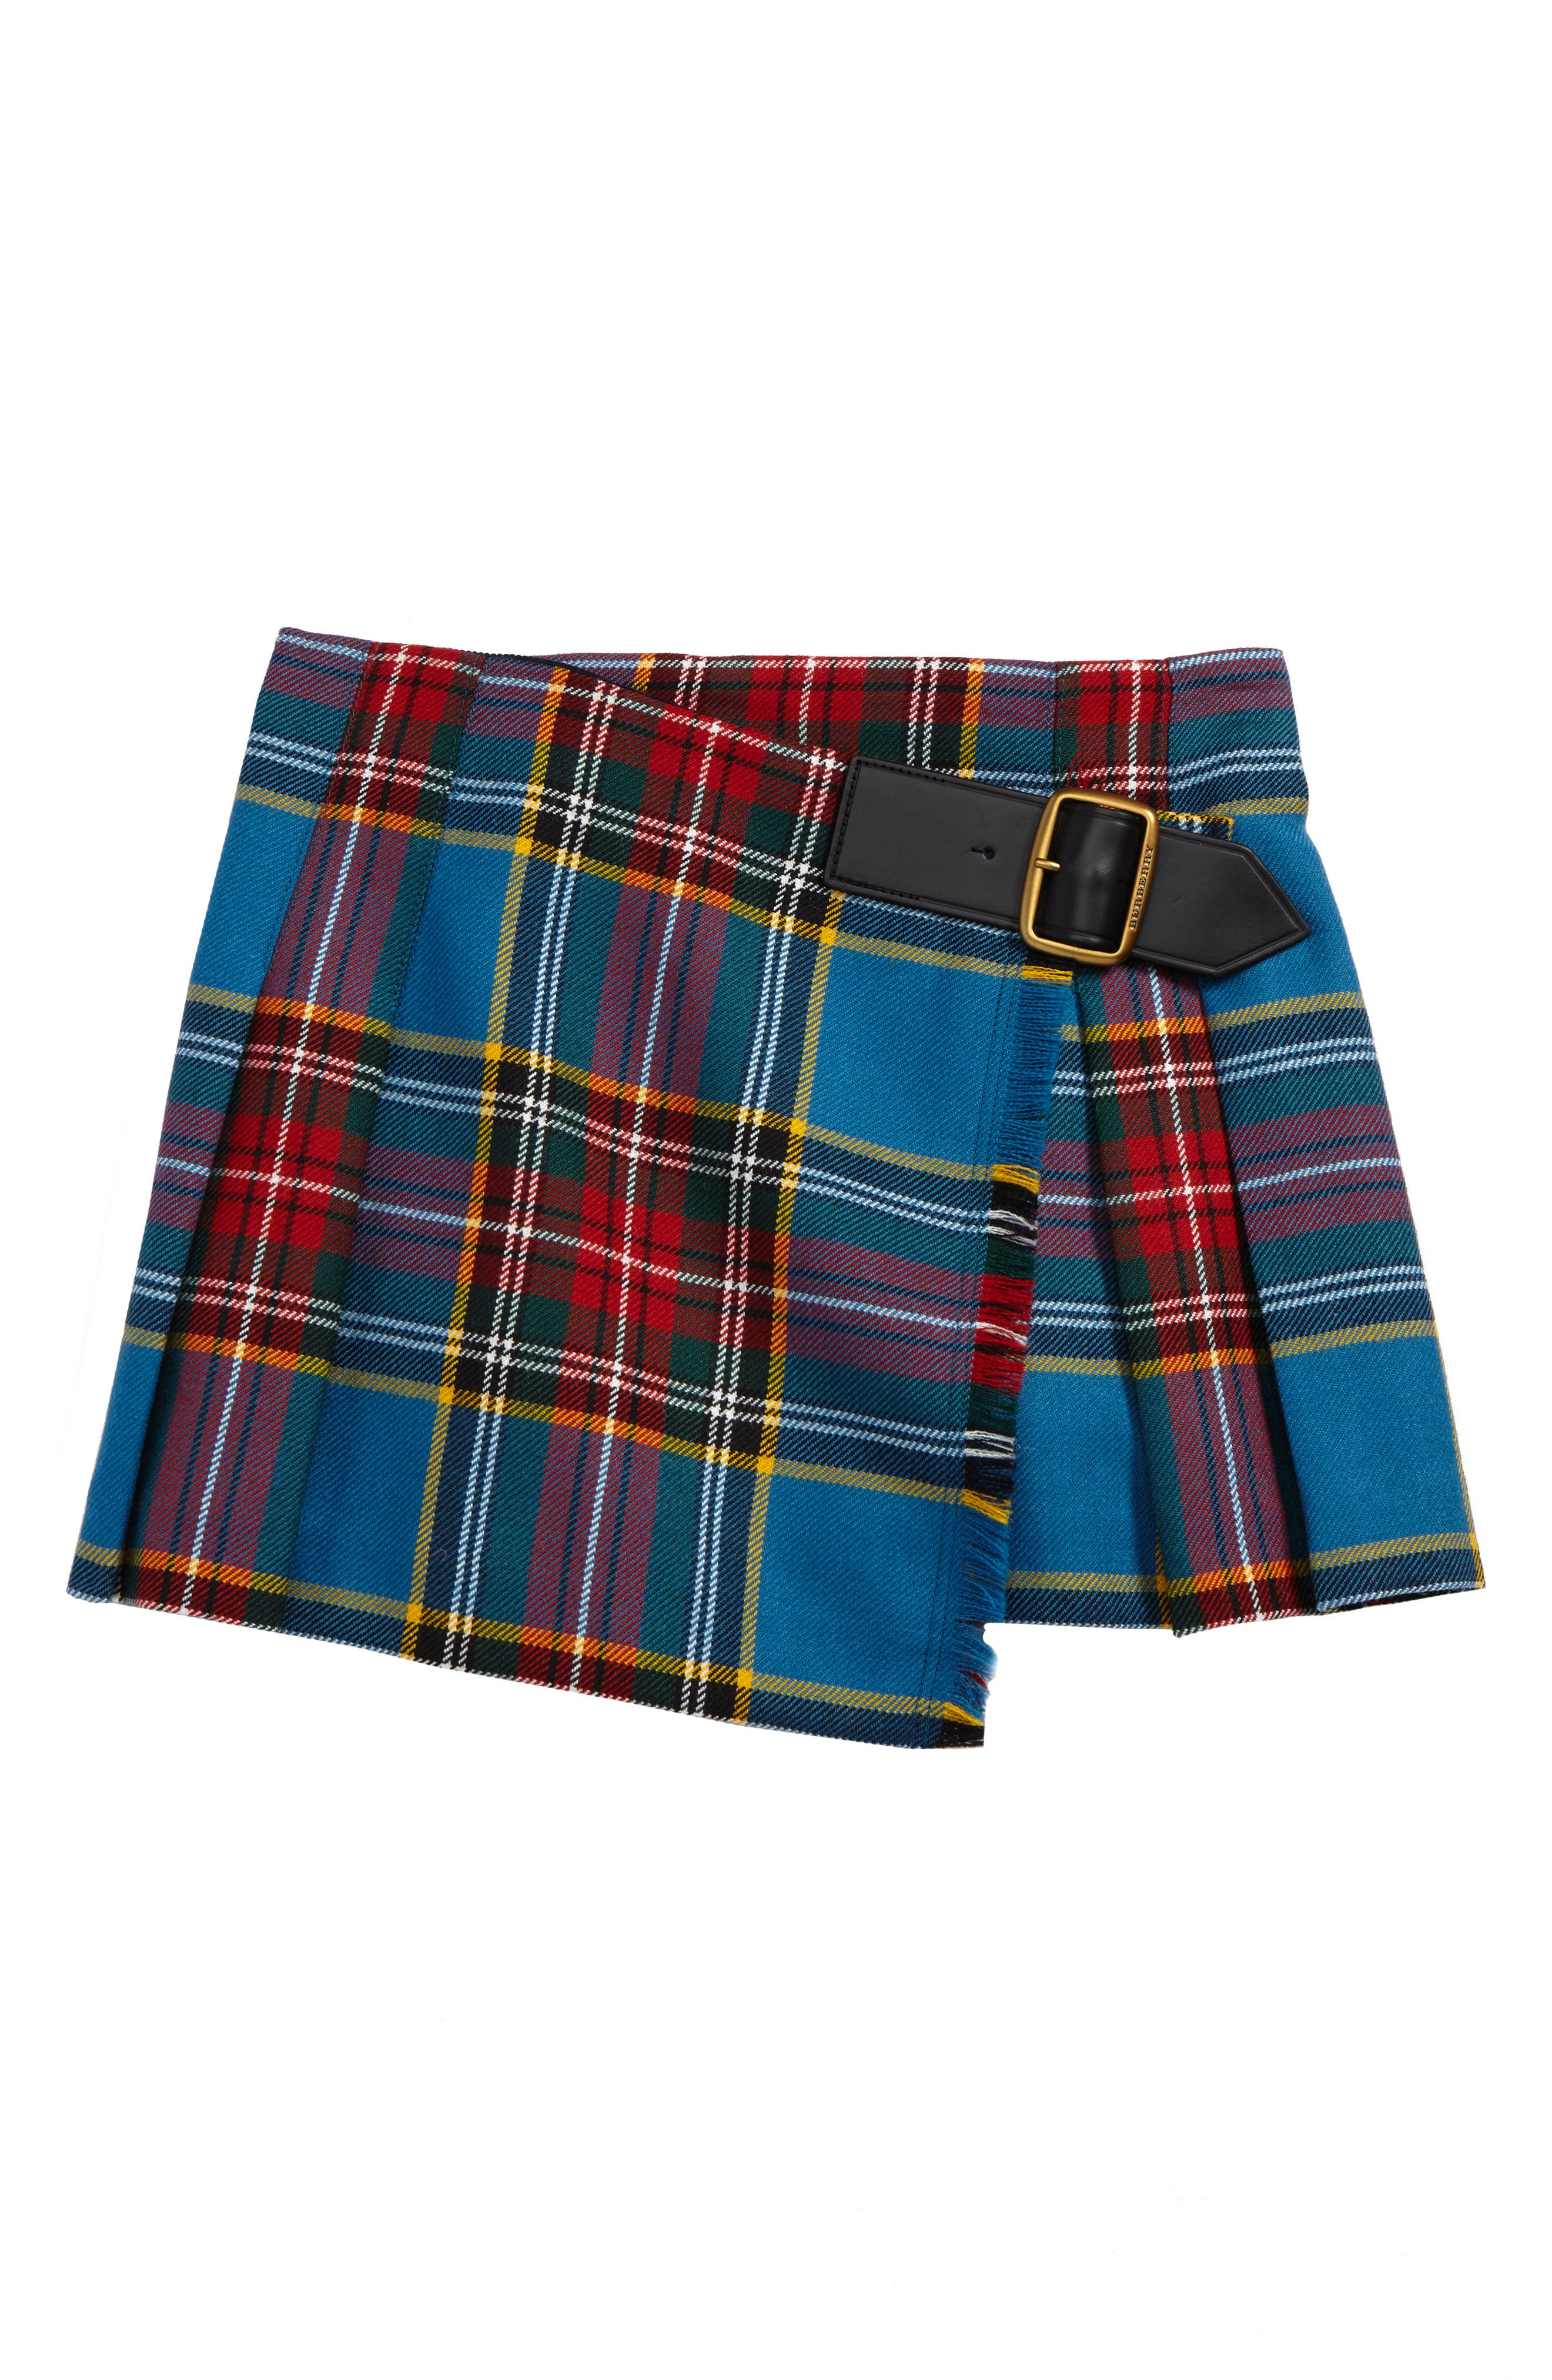 Klorrie Plaid Wool Miniskirt,                             Main thumbnail 1, color,                             439